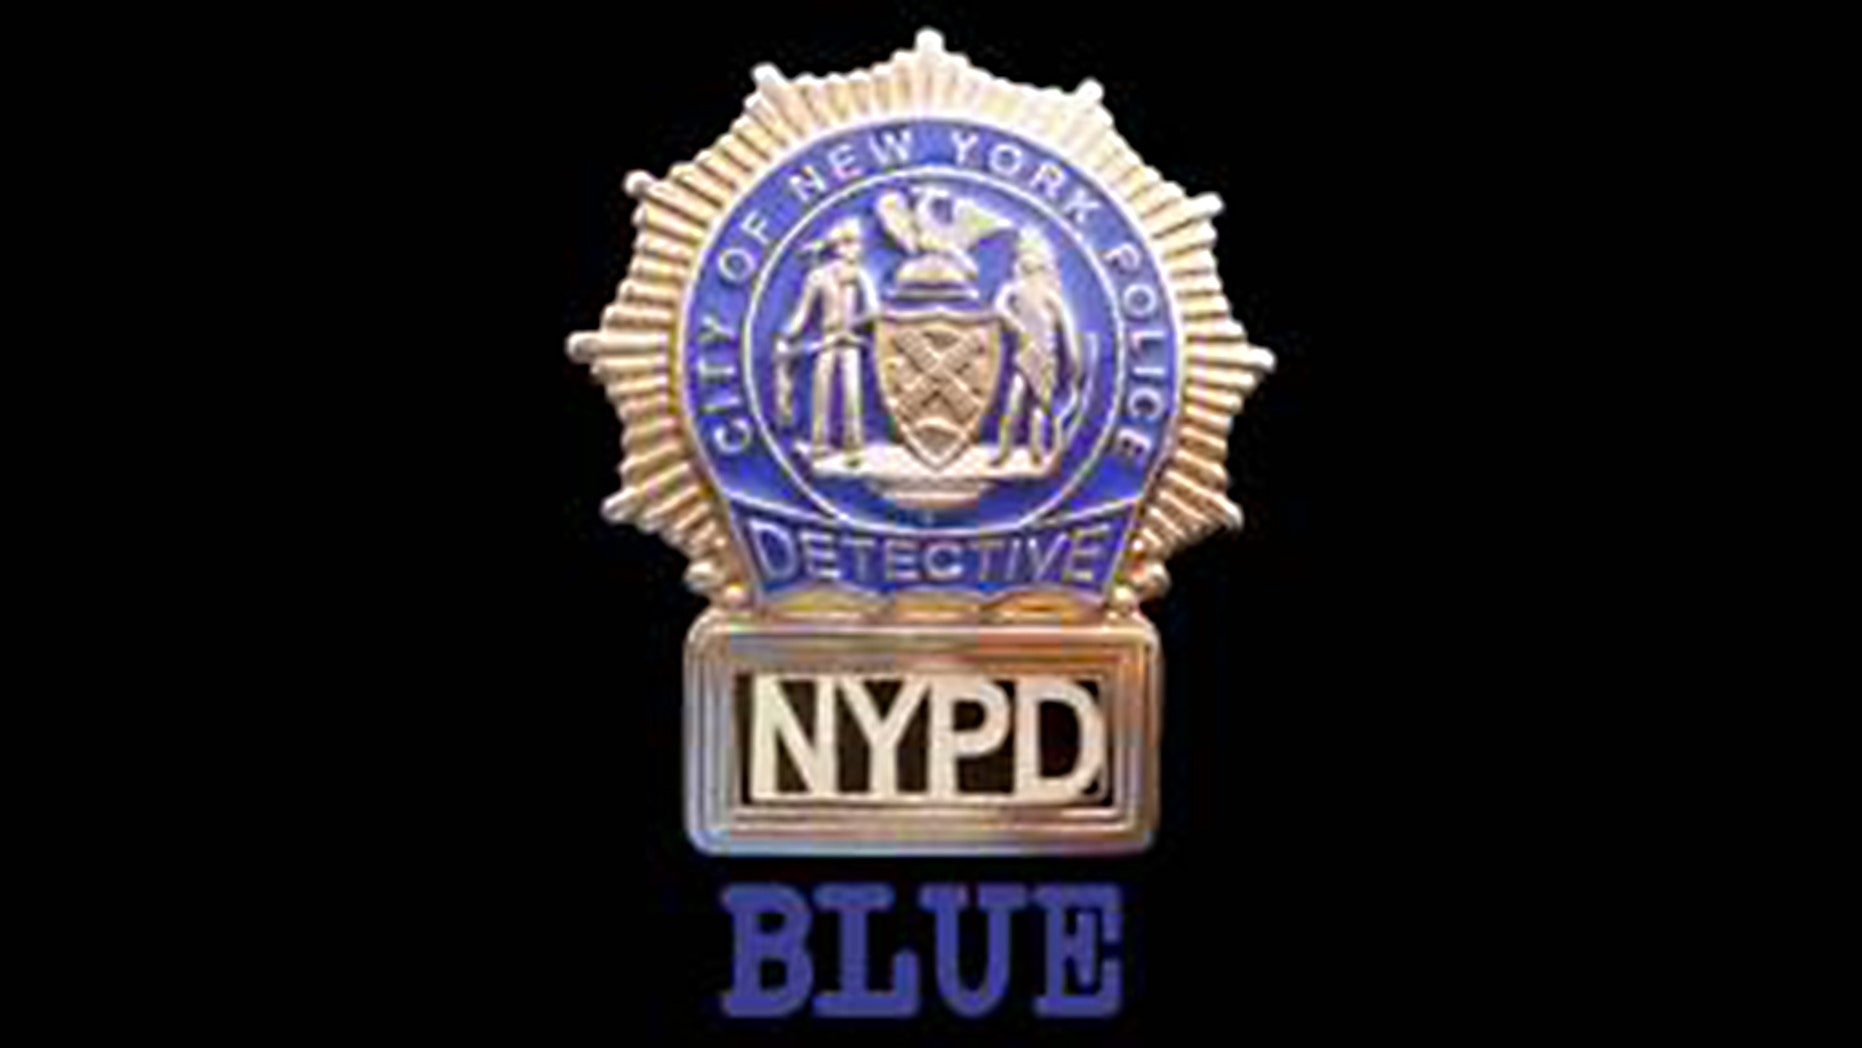 NYPD Blue sequel in the works at ABC